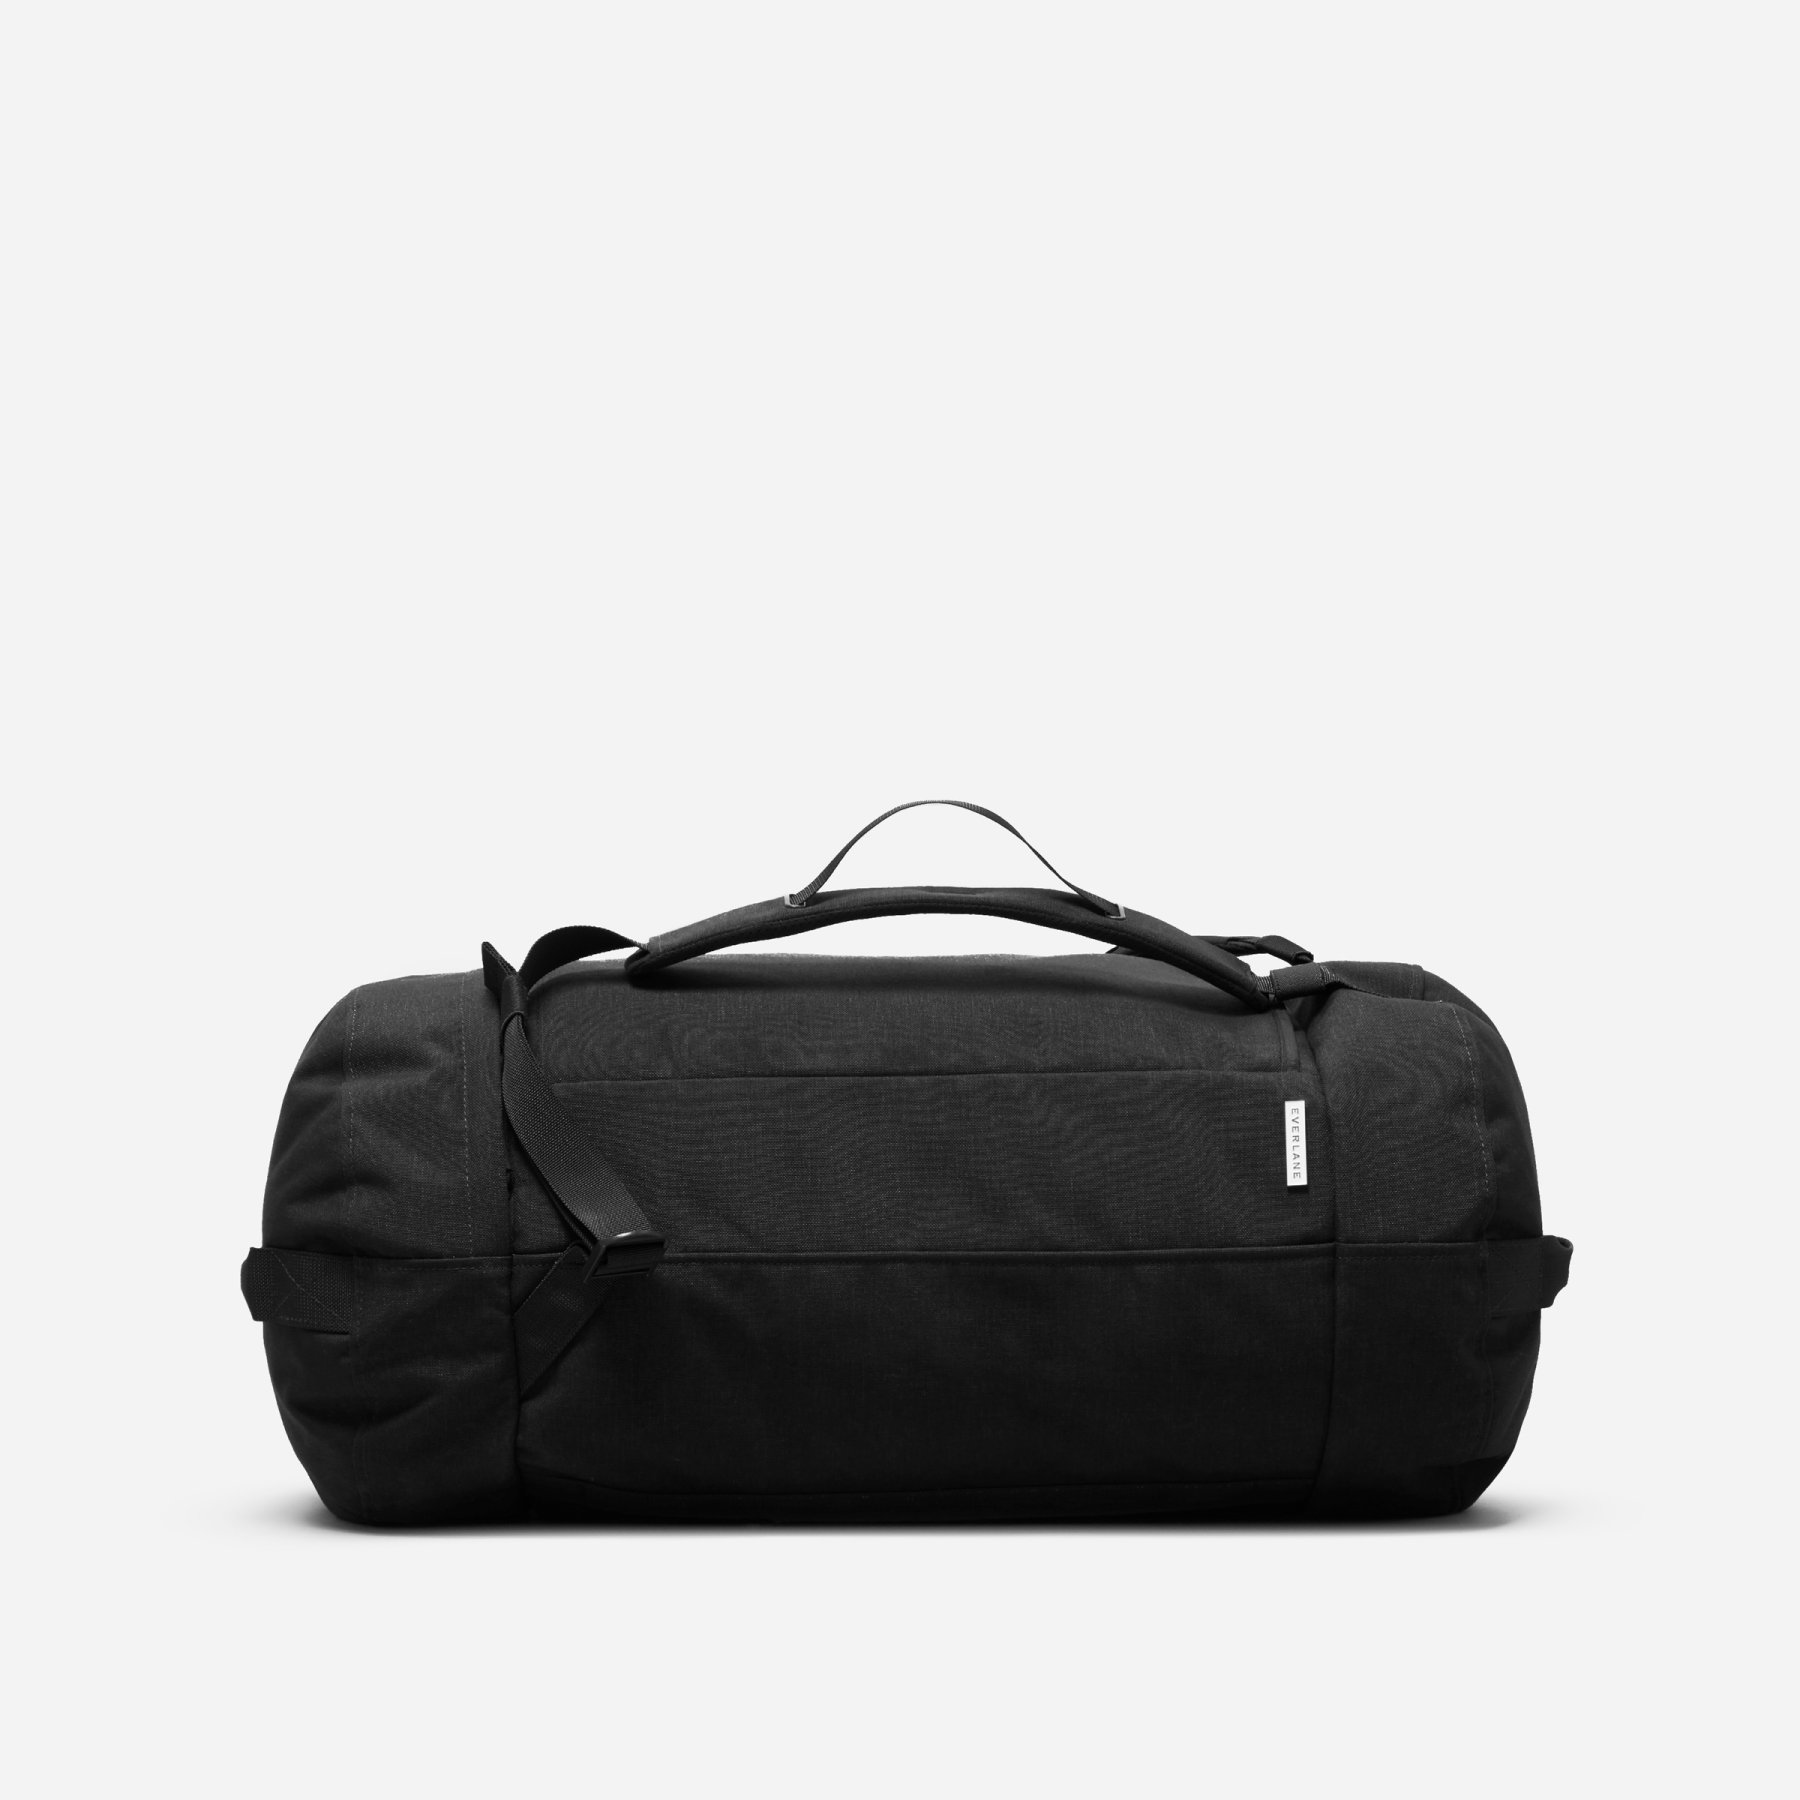 The Mover Pack by Everlane